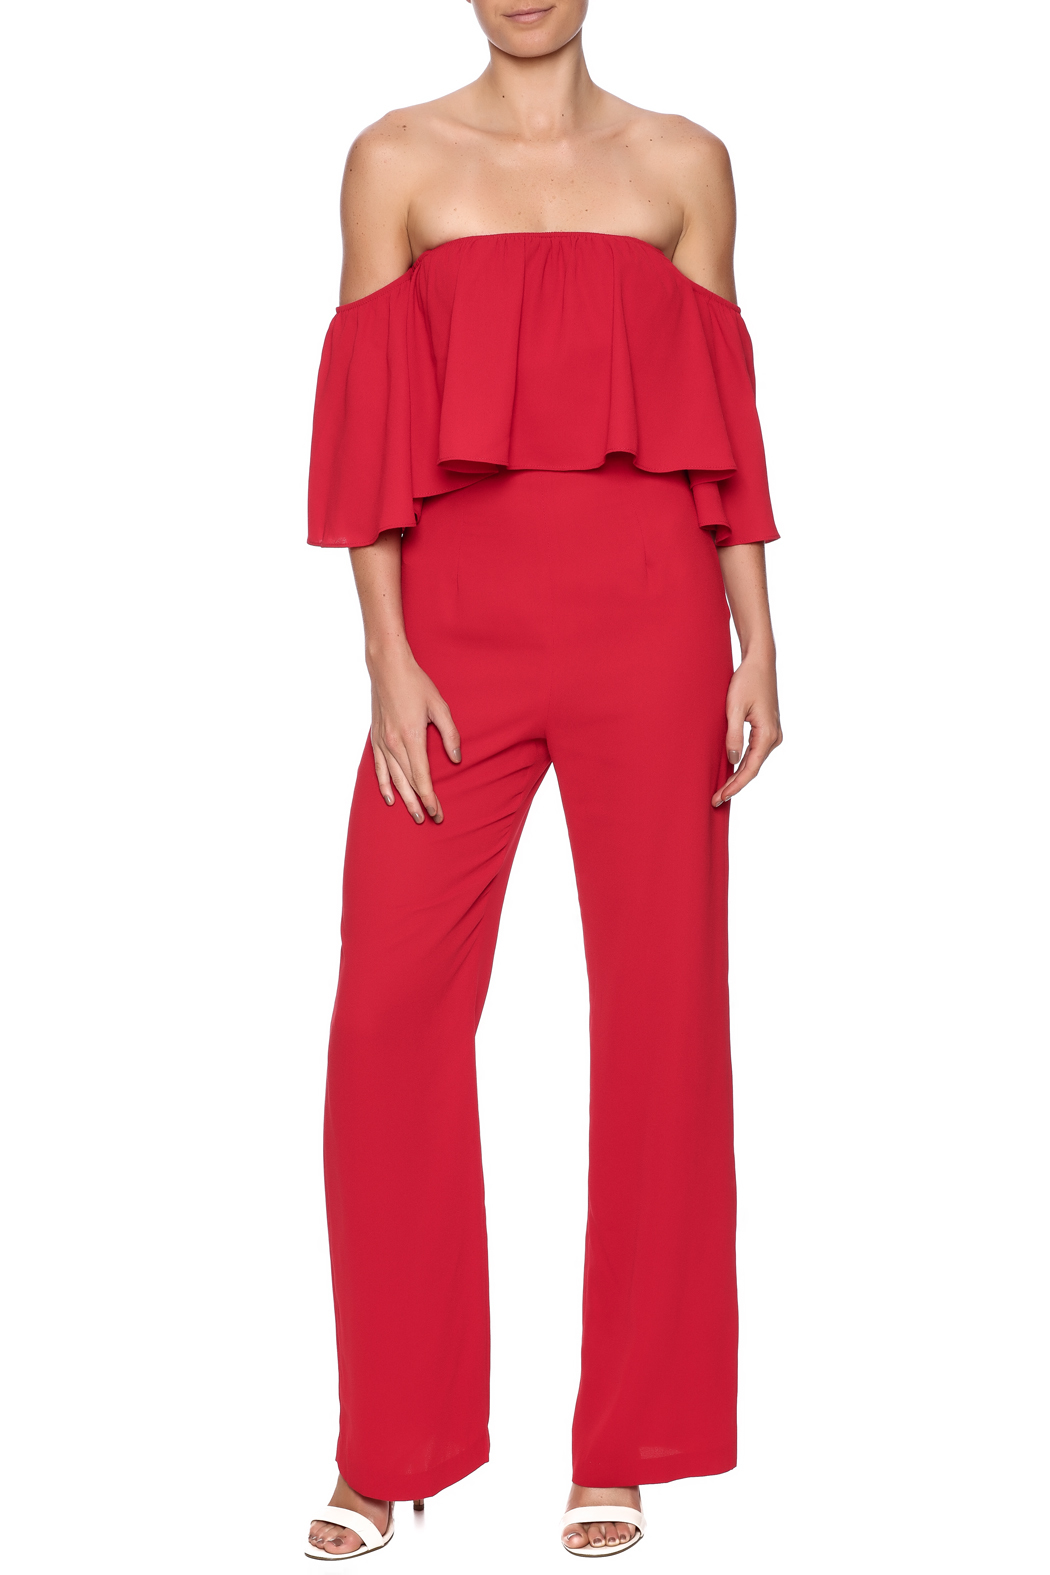 Alythea Red Jumpsuit from Manhattan by Dor L'Dor — Shoptiques